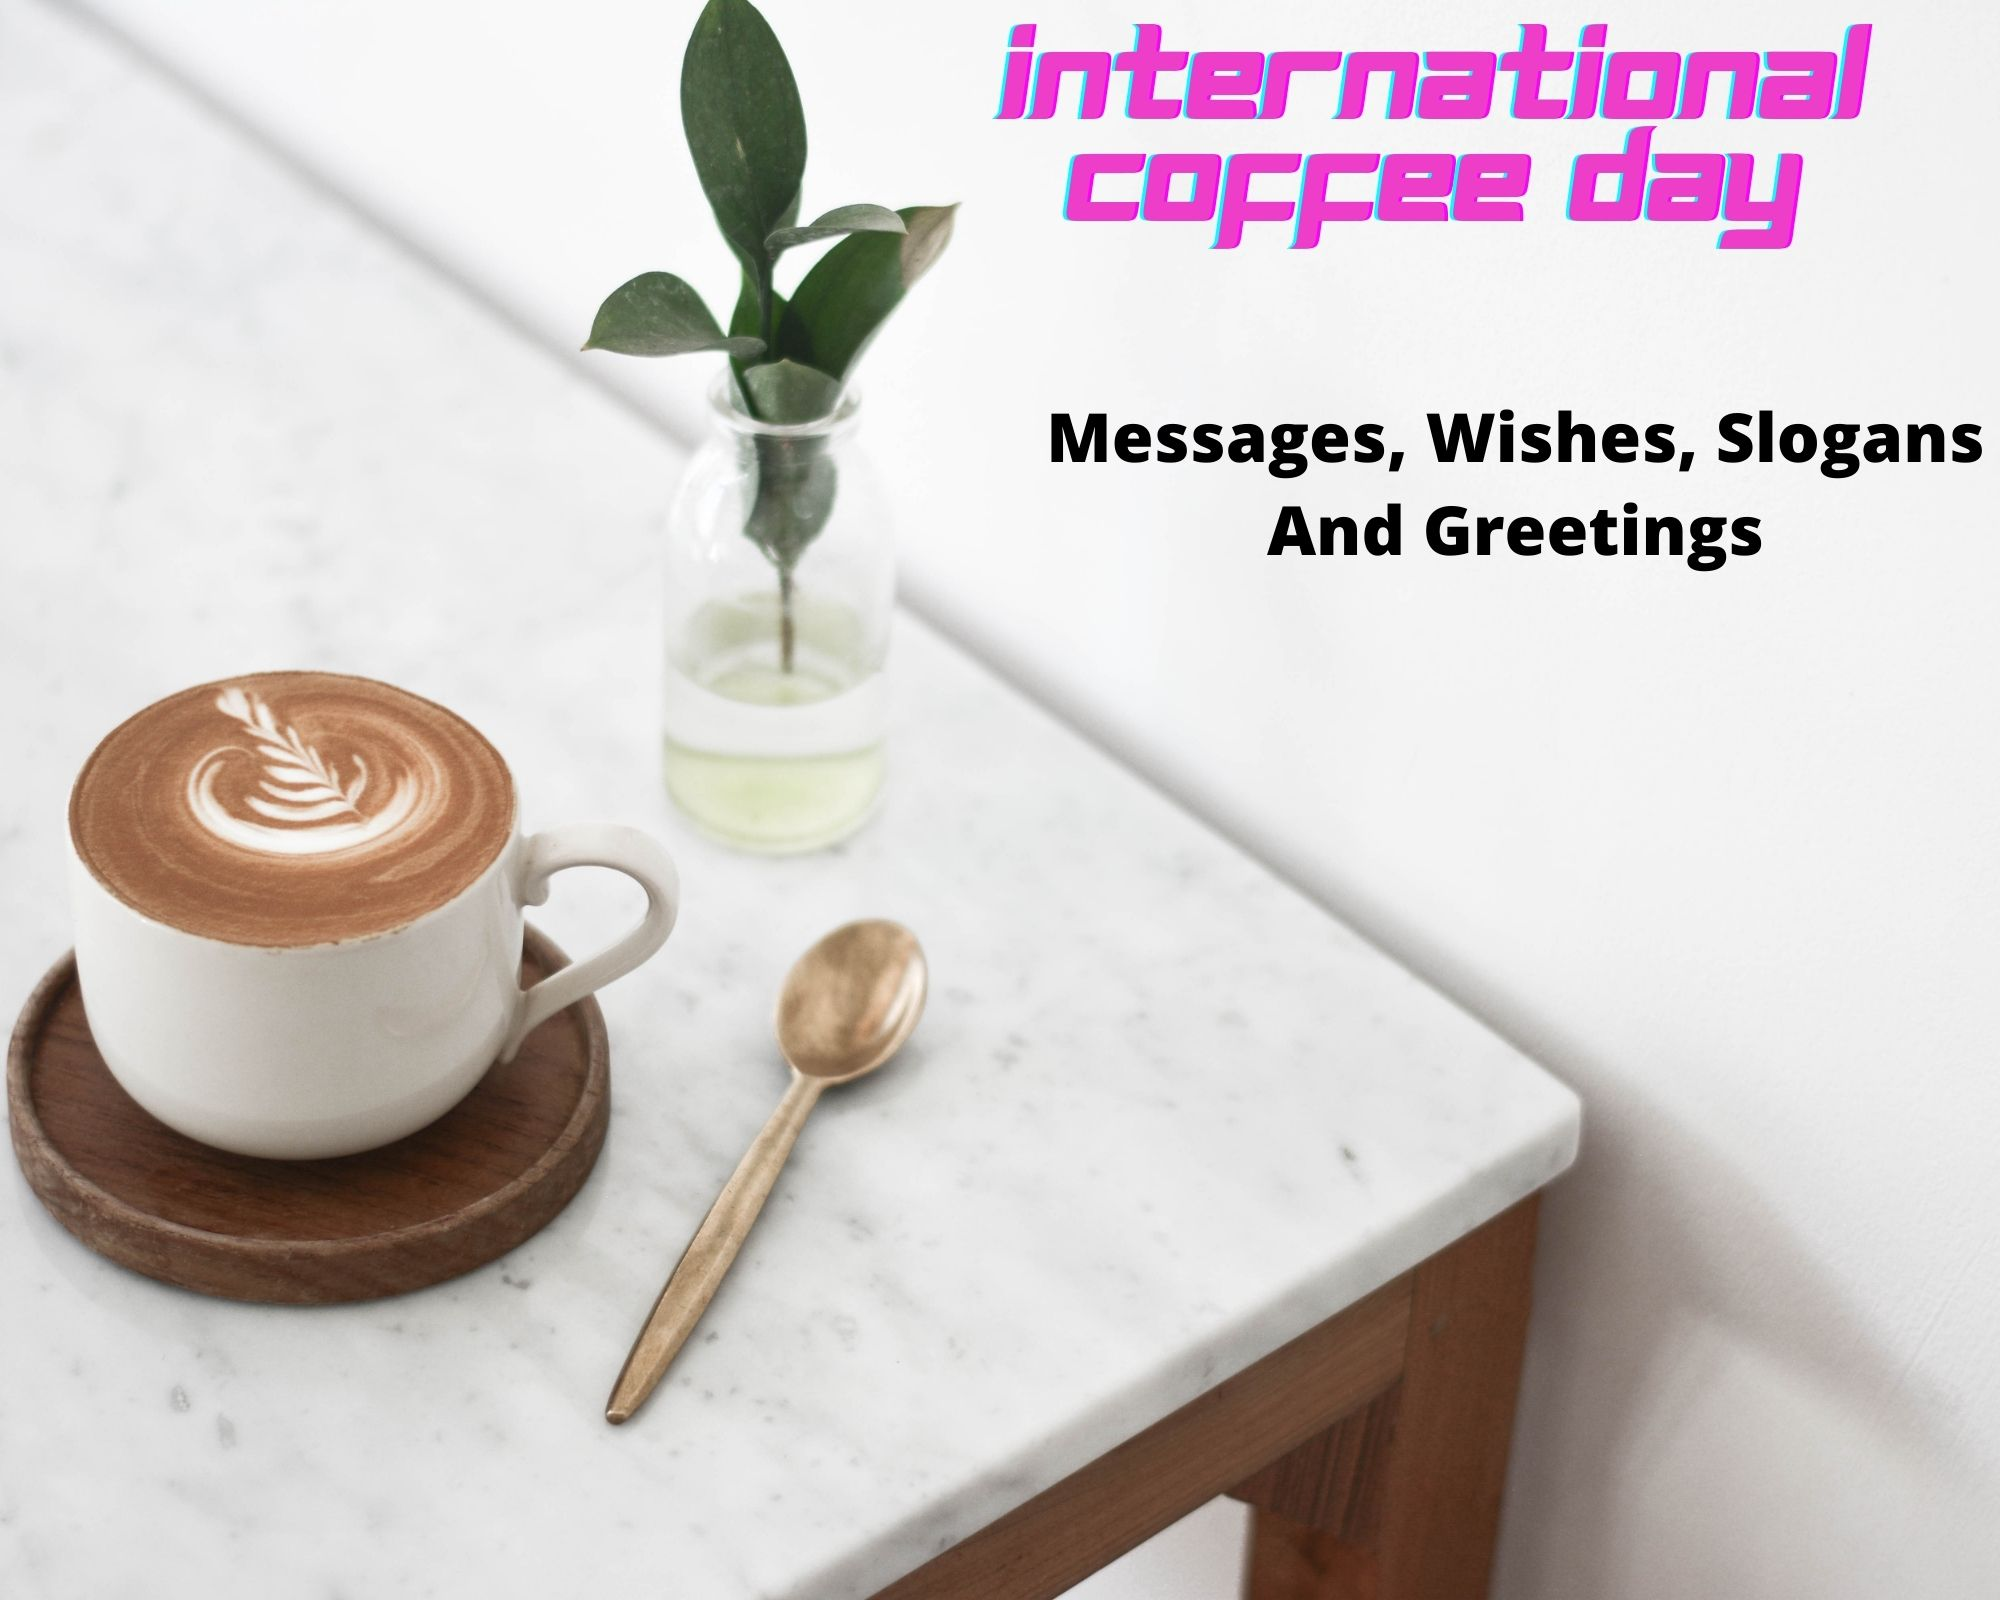 International Coffee Day Messages, Wishes, Slogans, And Greetings